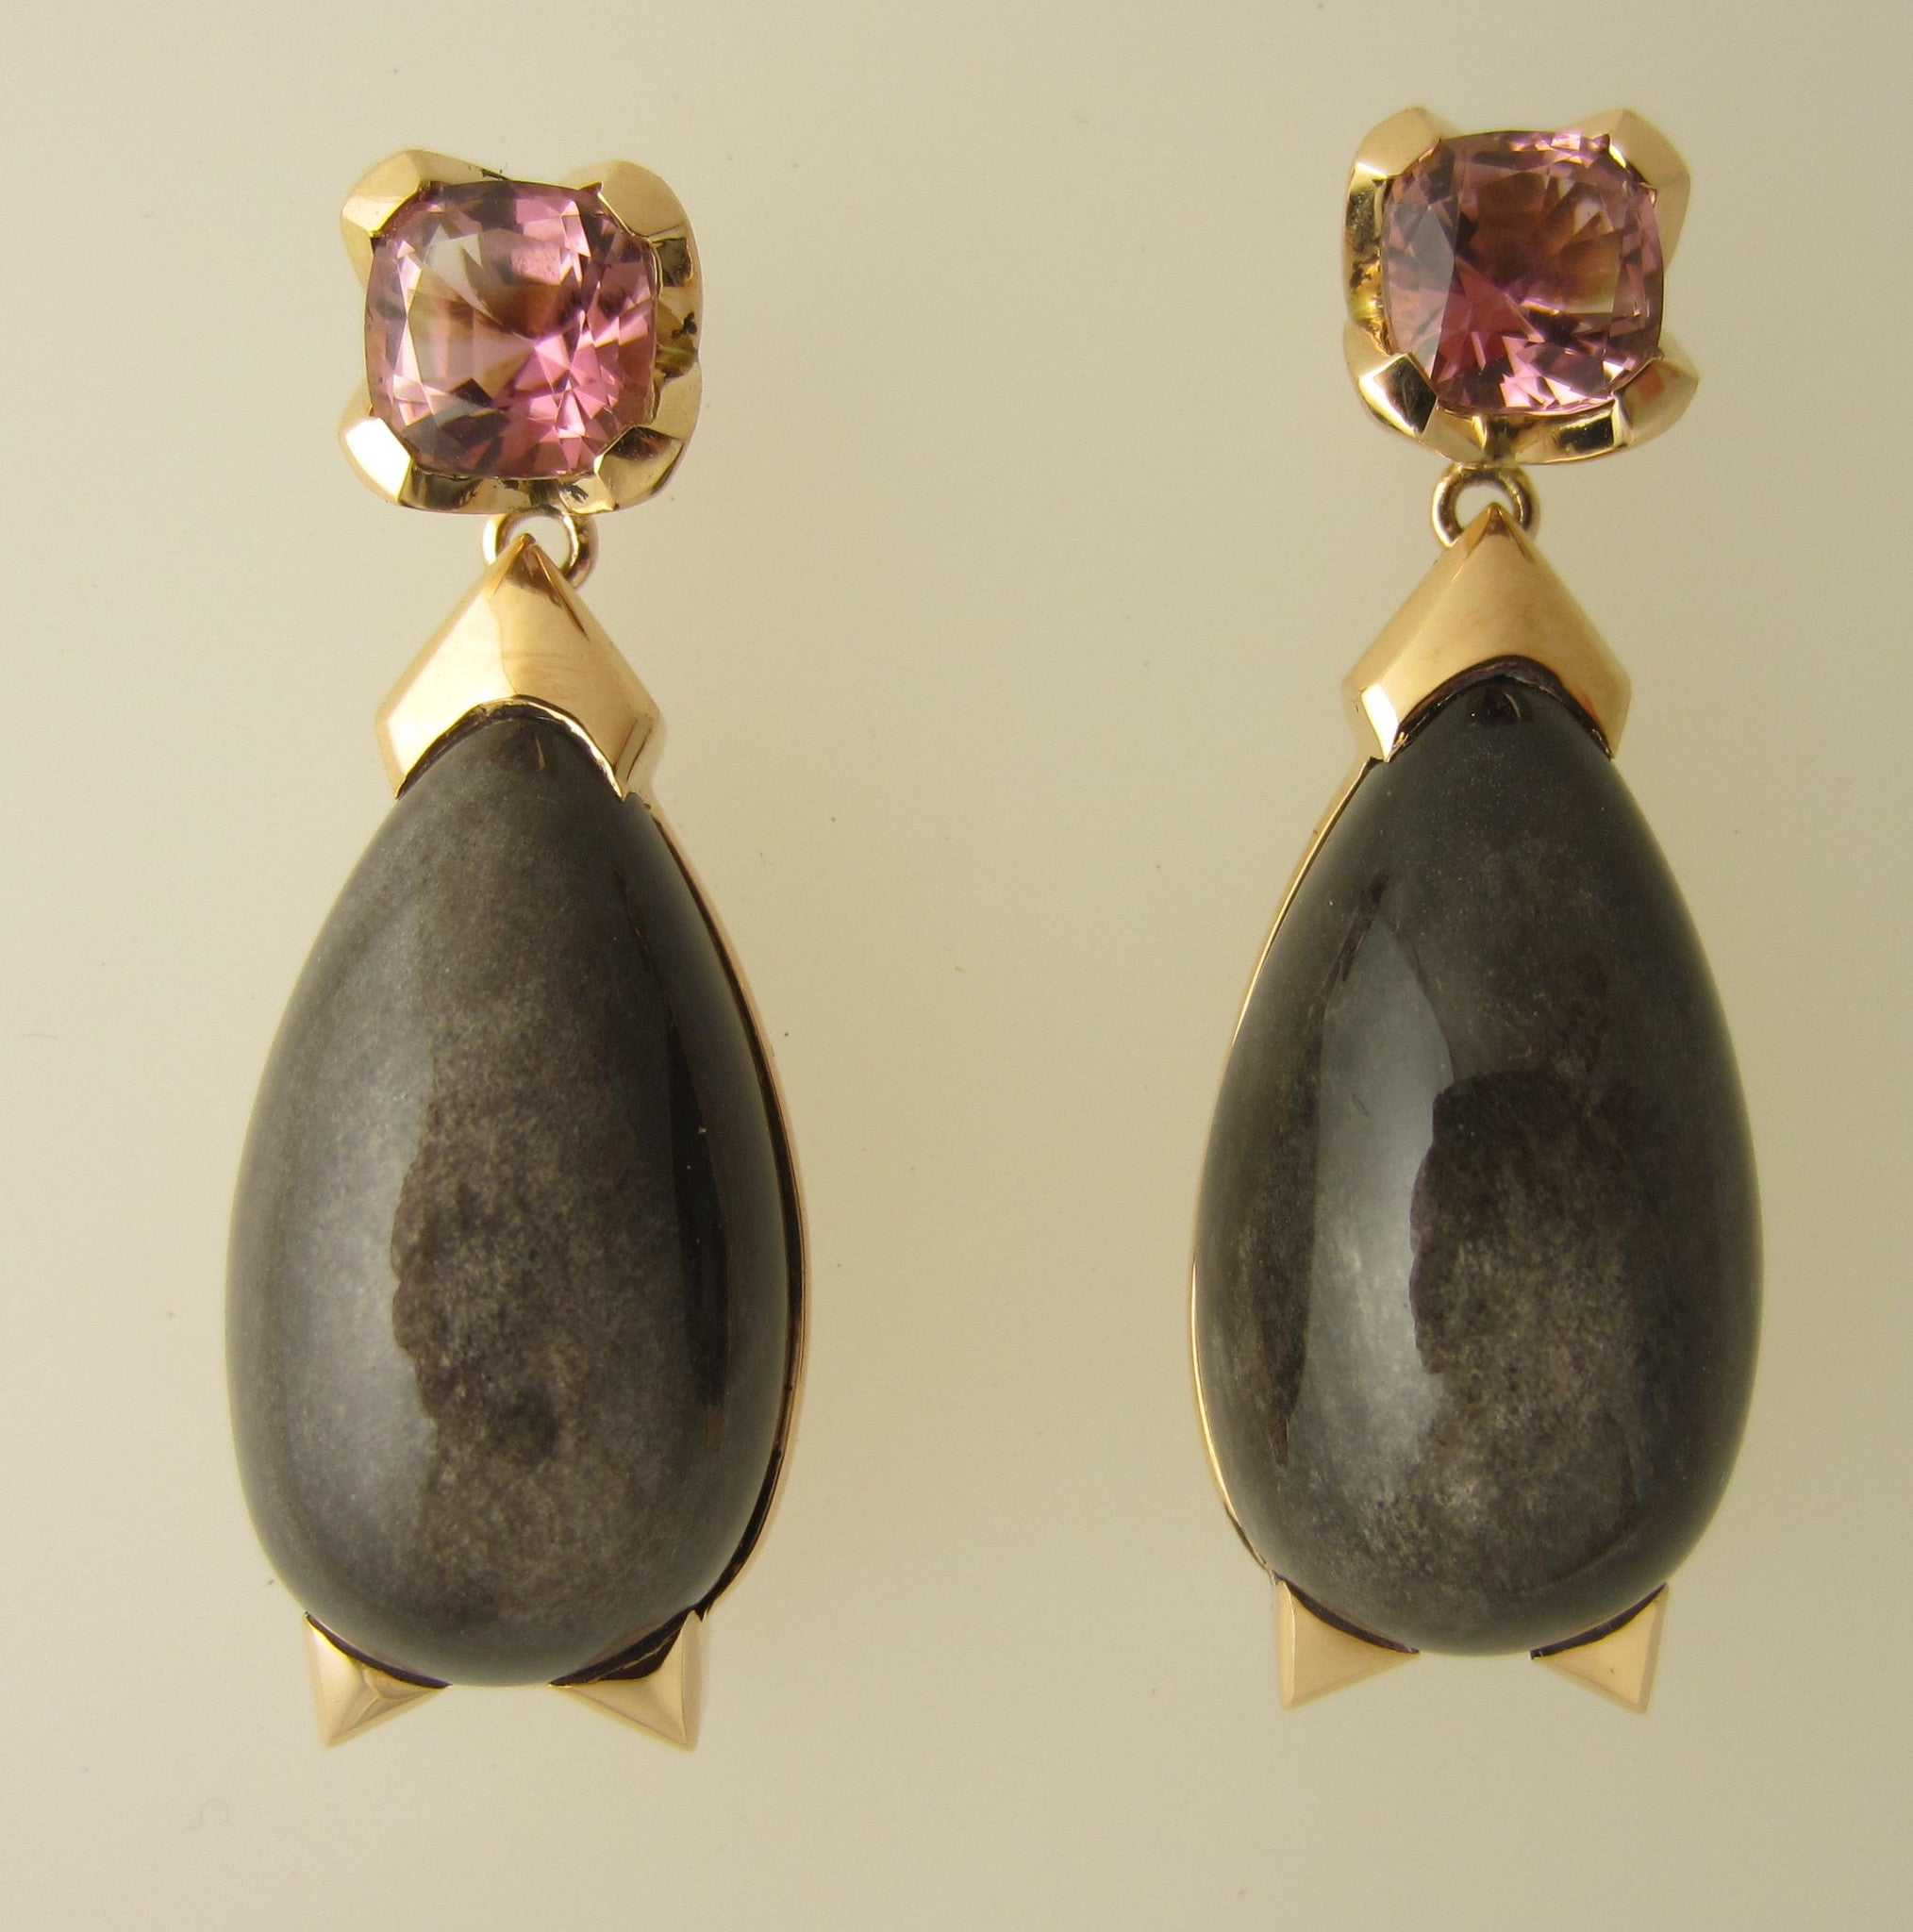 Obsidian with pink Tourmaline earrings